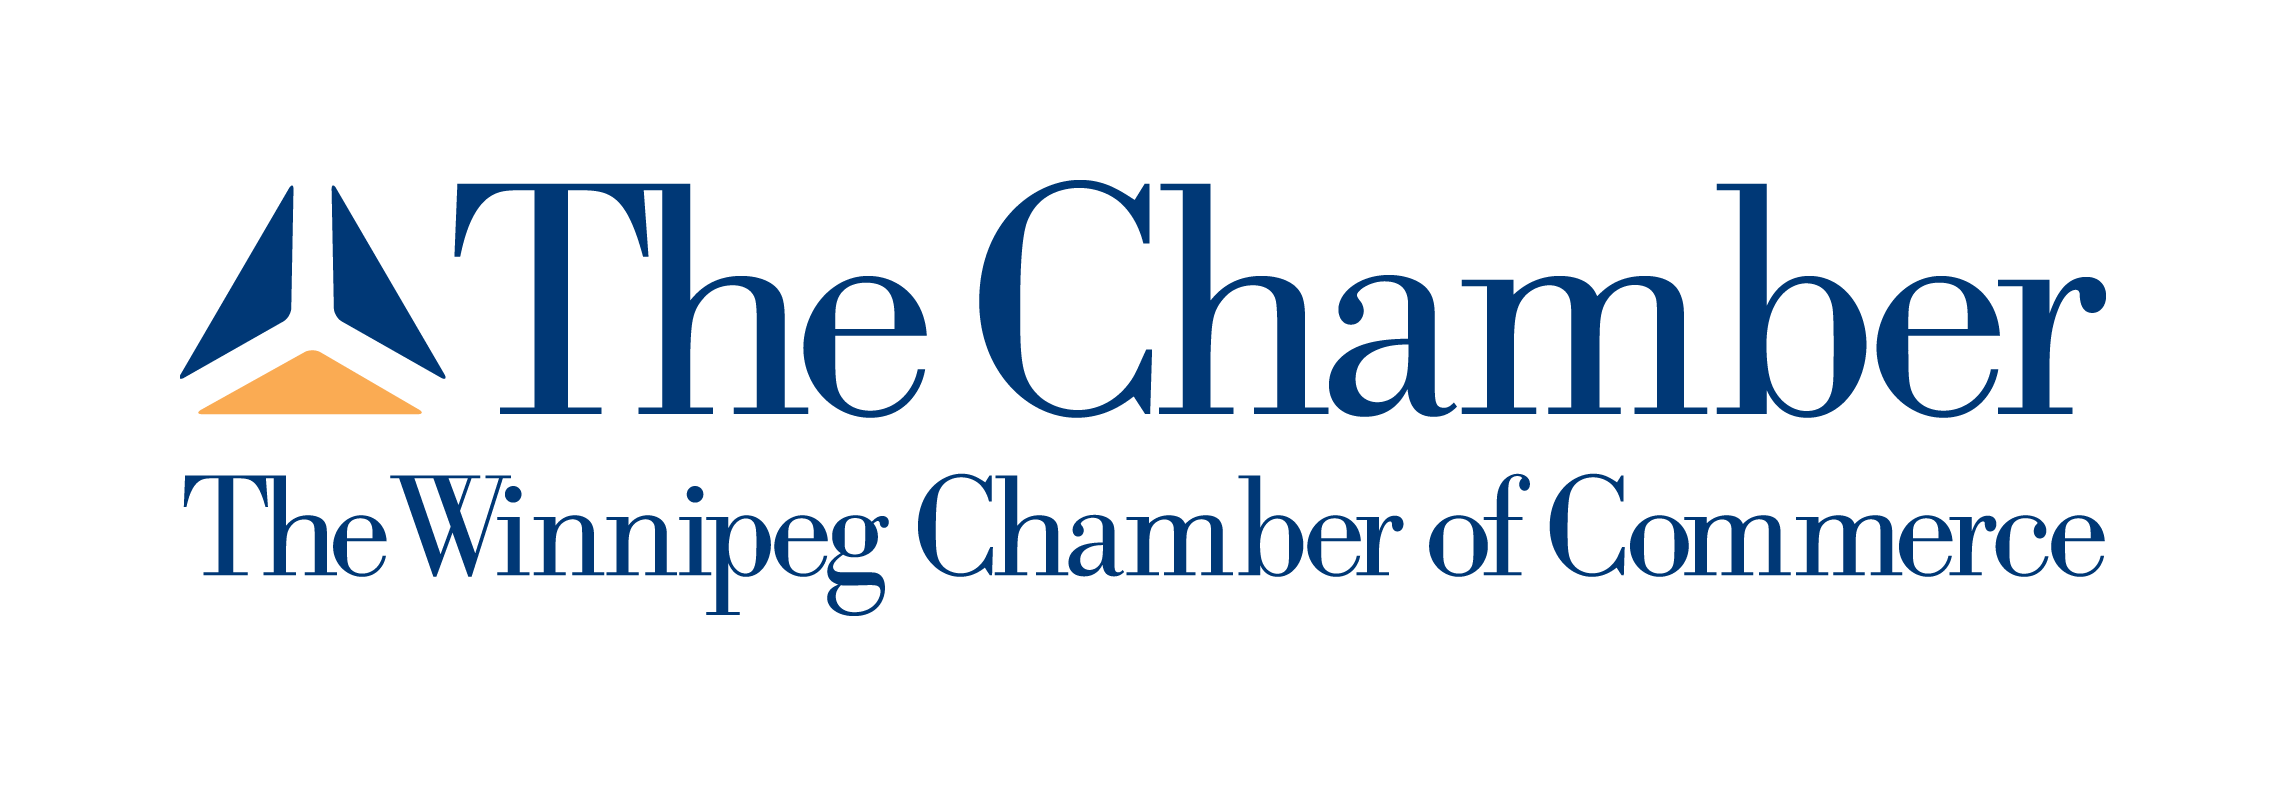 The Winnipeg Chamber of Commerce